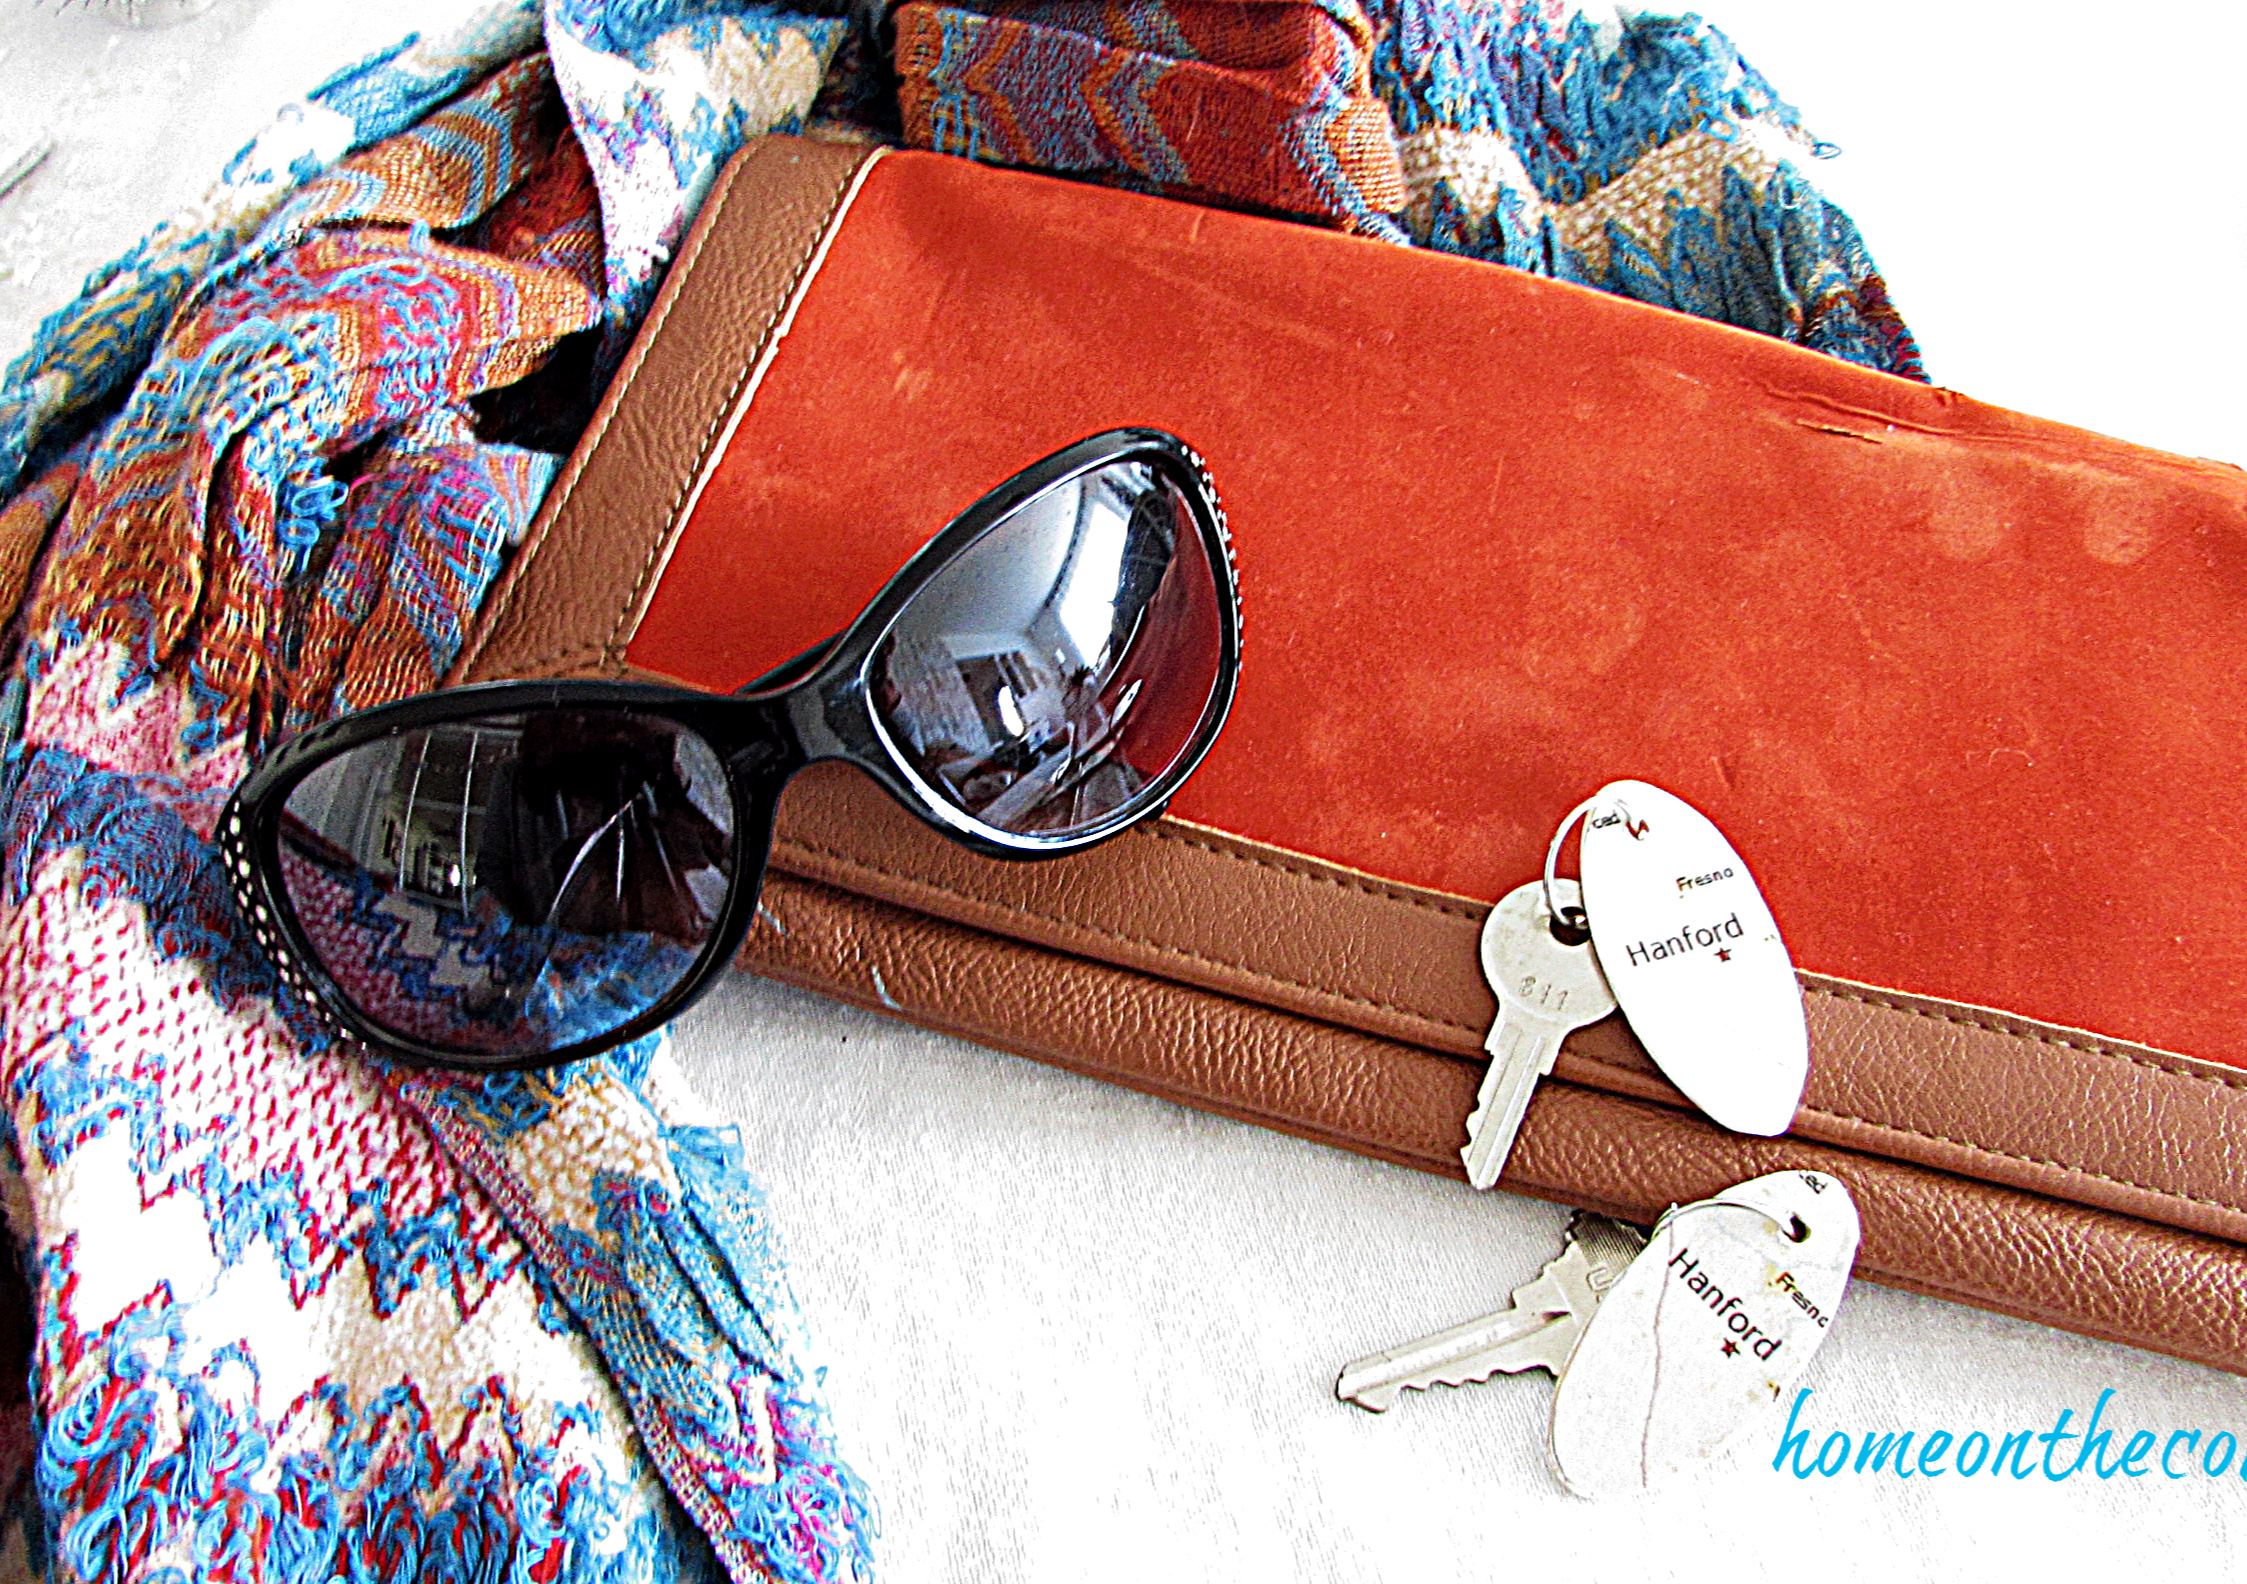 map key chain with sunglasses, purse